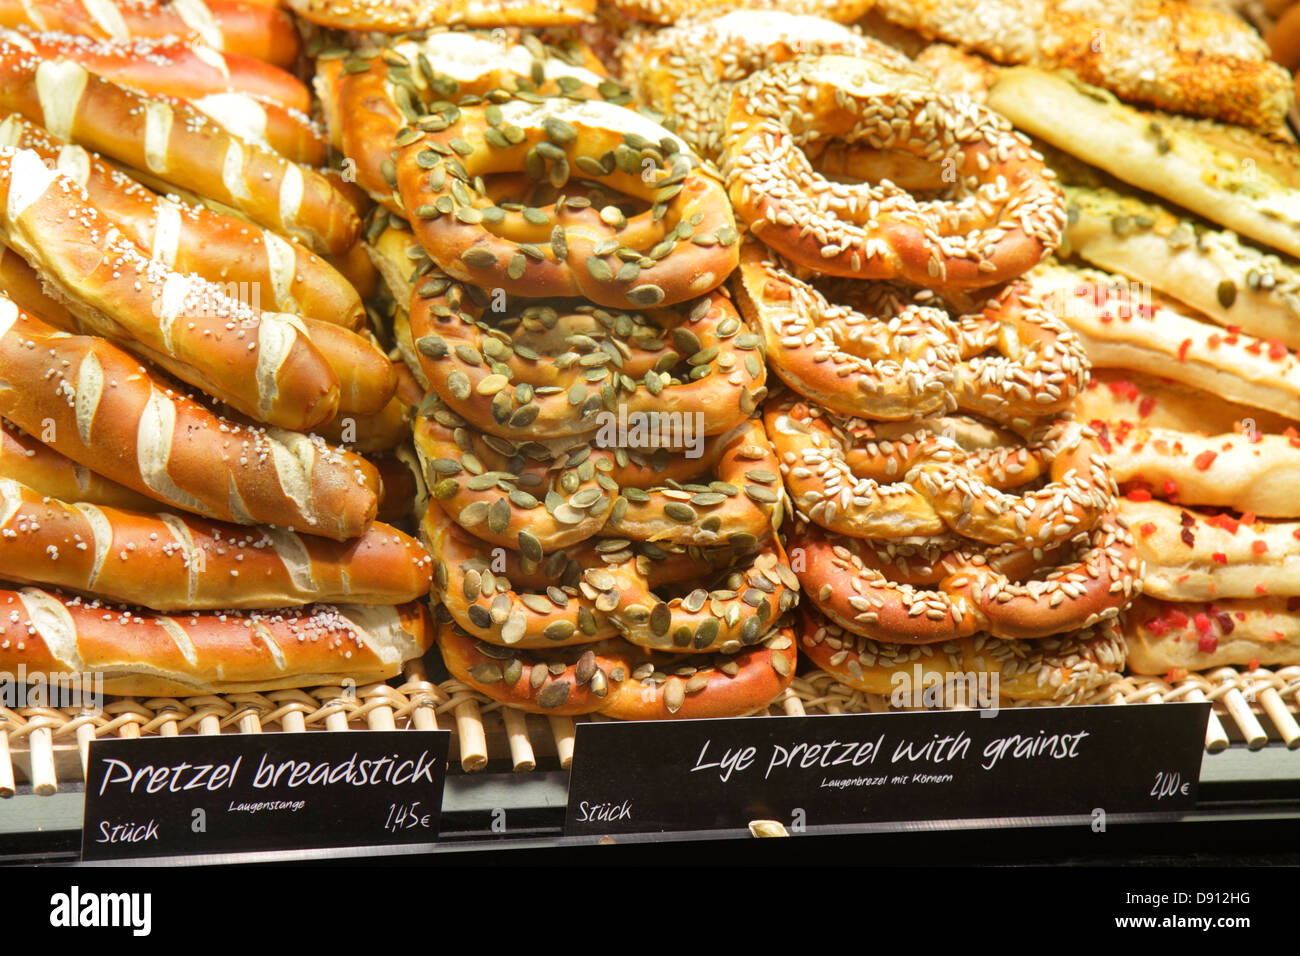 Germany Frankfurt am Main Airport FRA terminal gate area concourse shopping display for sale Heberer's Traditional - Stock Image